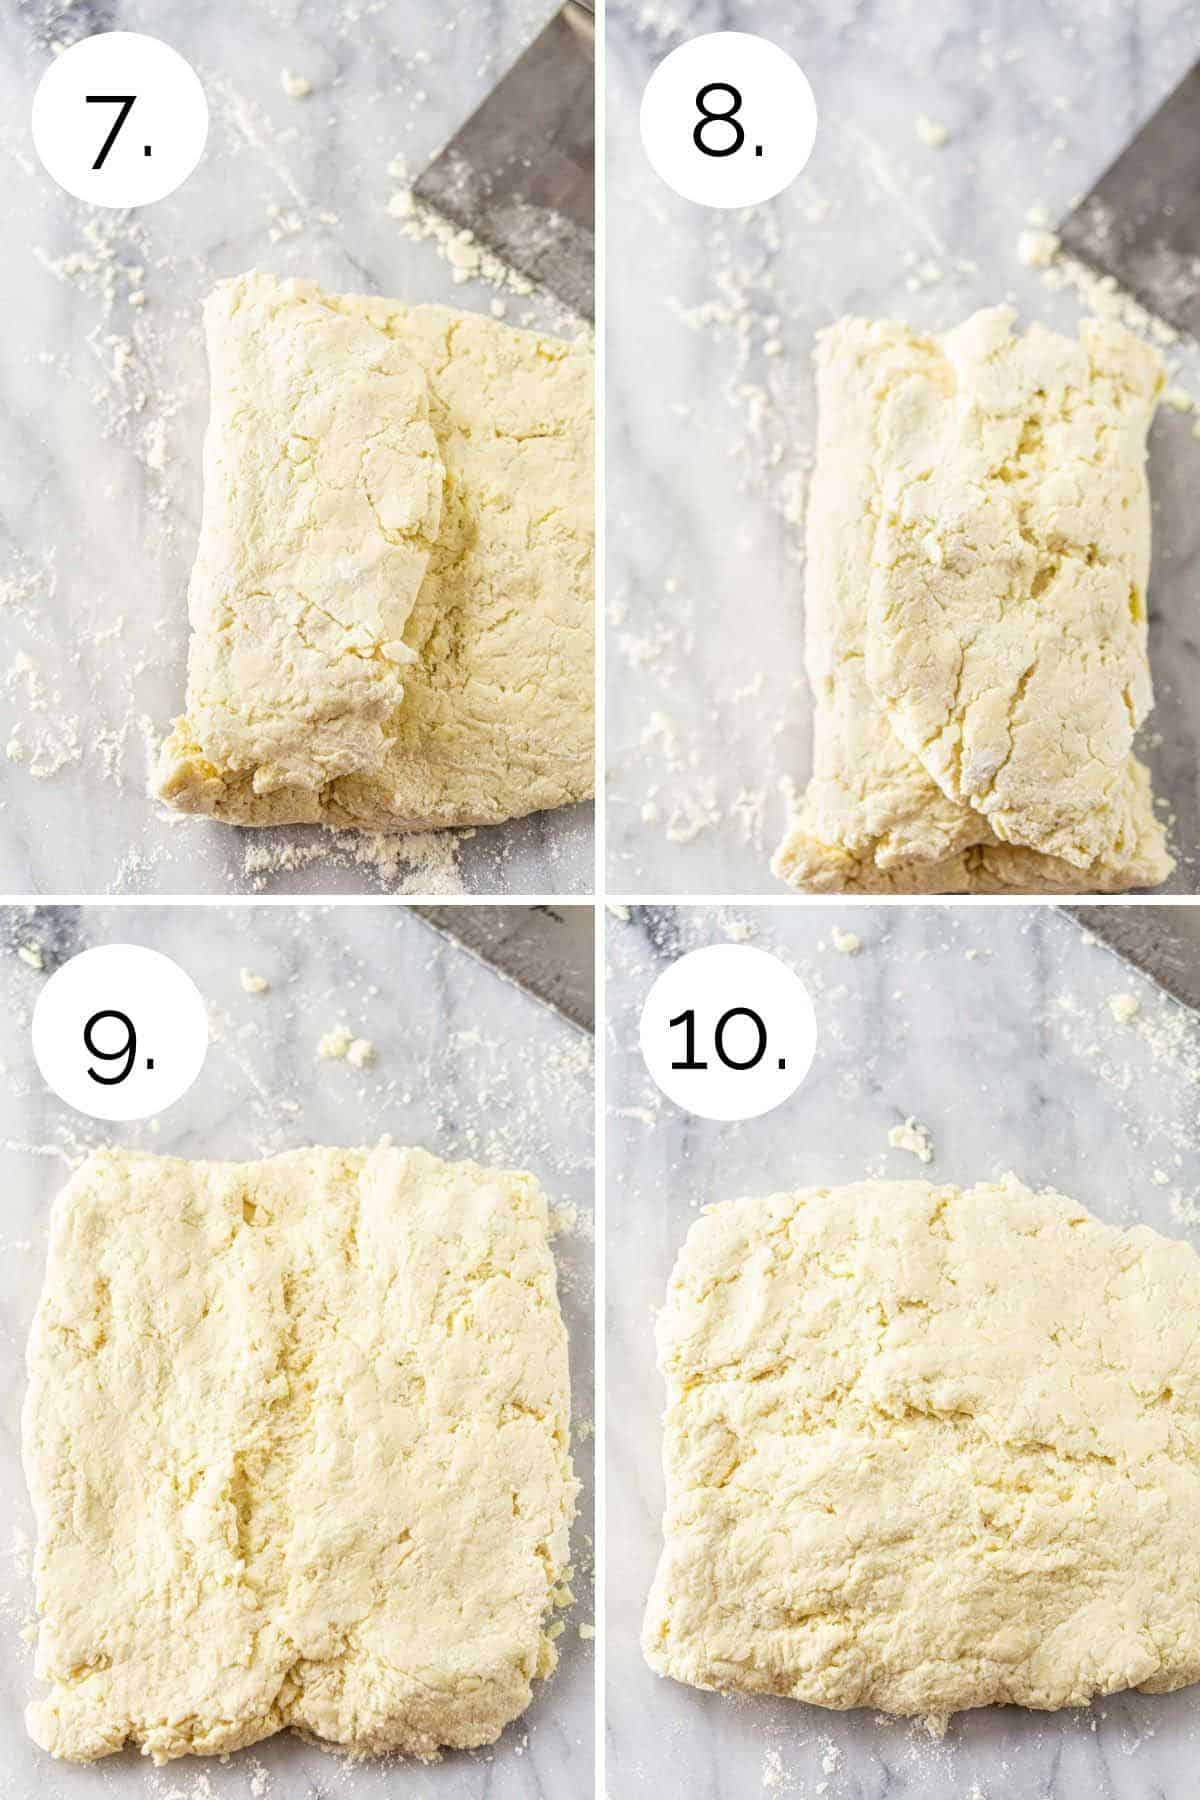 Showing the process of folding the dough like a letter on a pastry board.